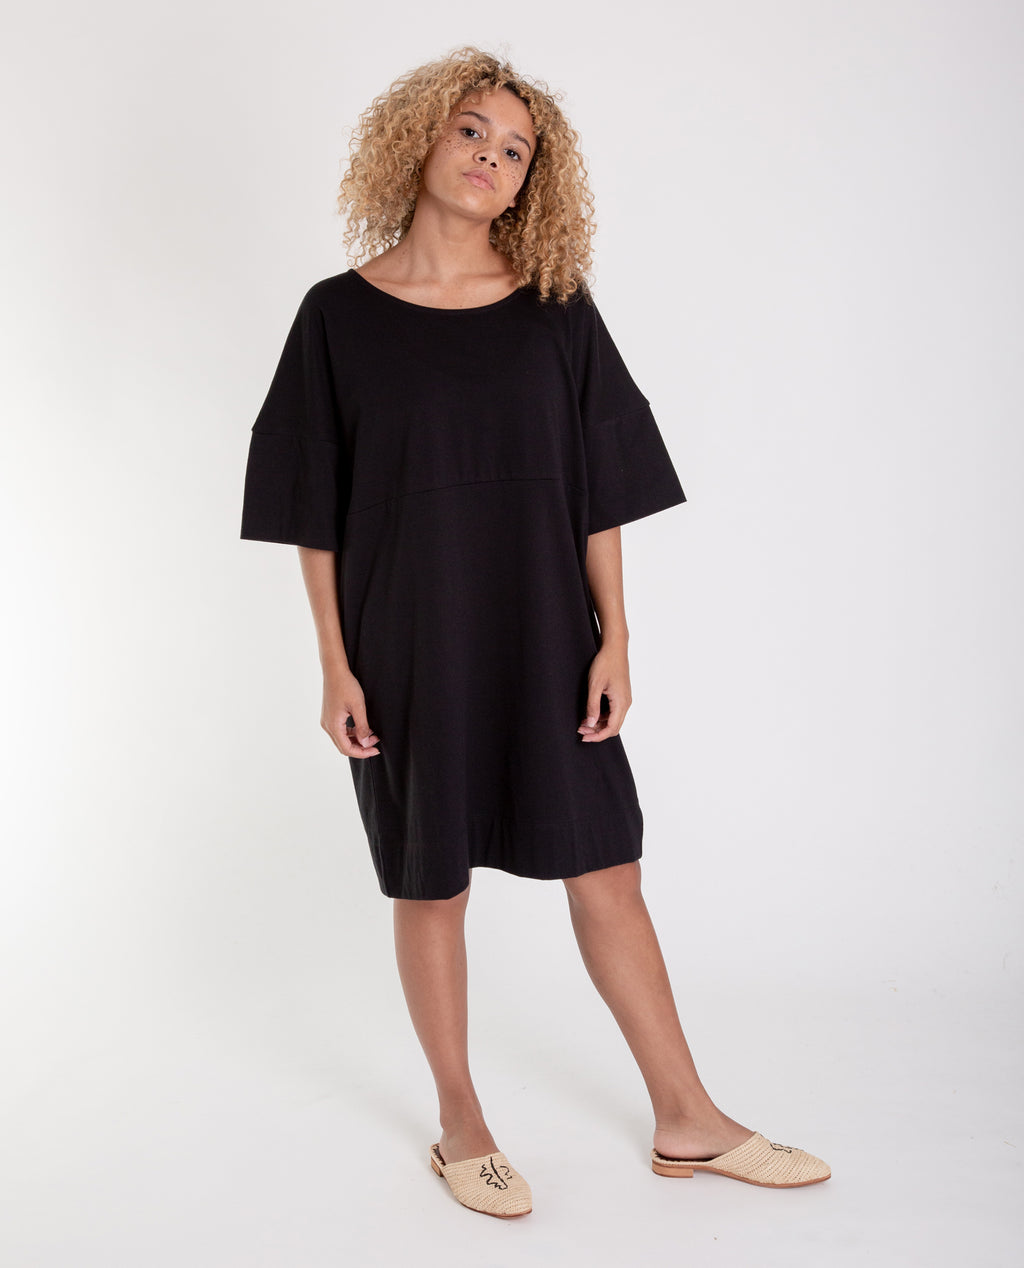 CARLA Organic Cotton Dress in Black